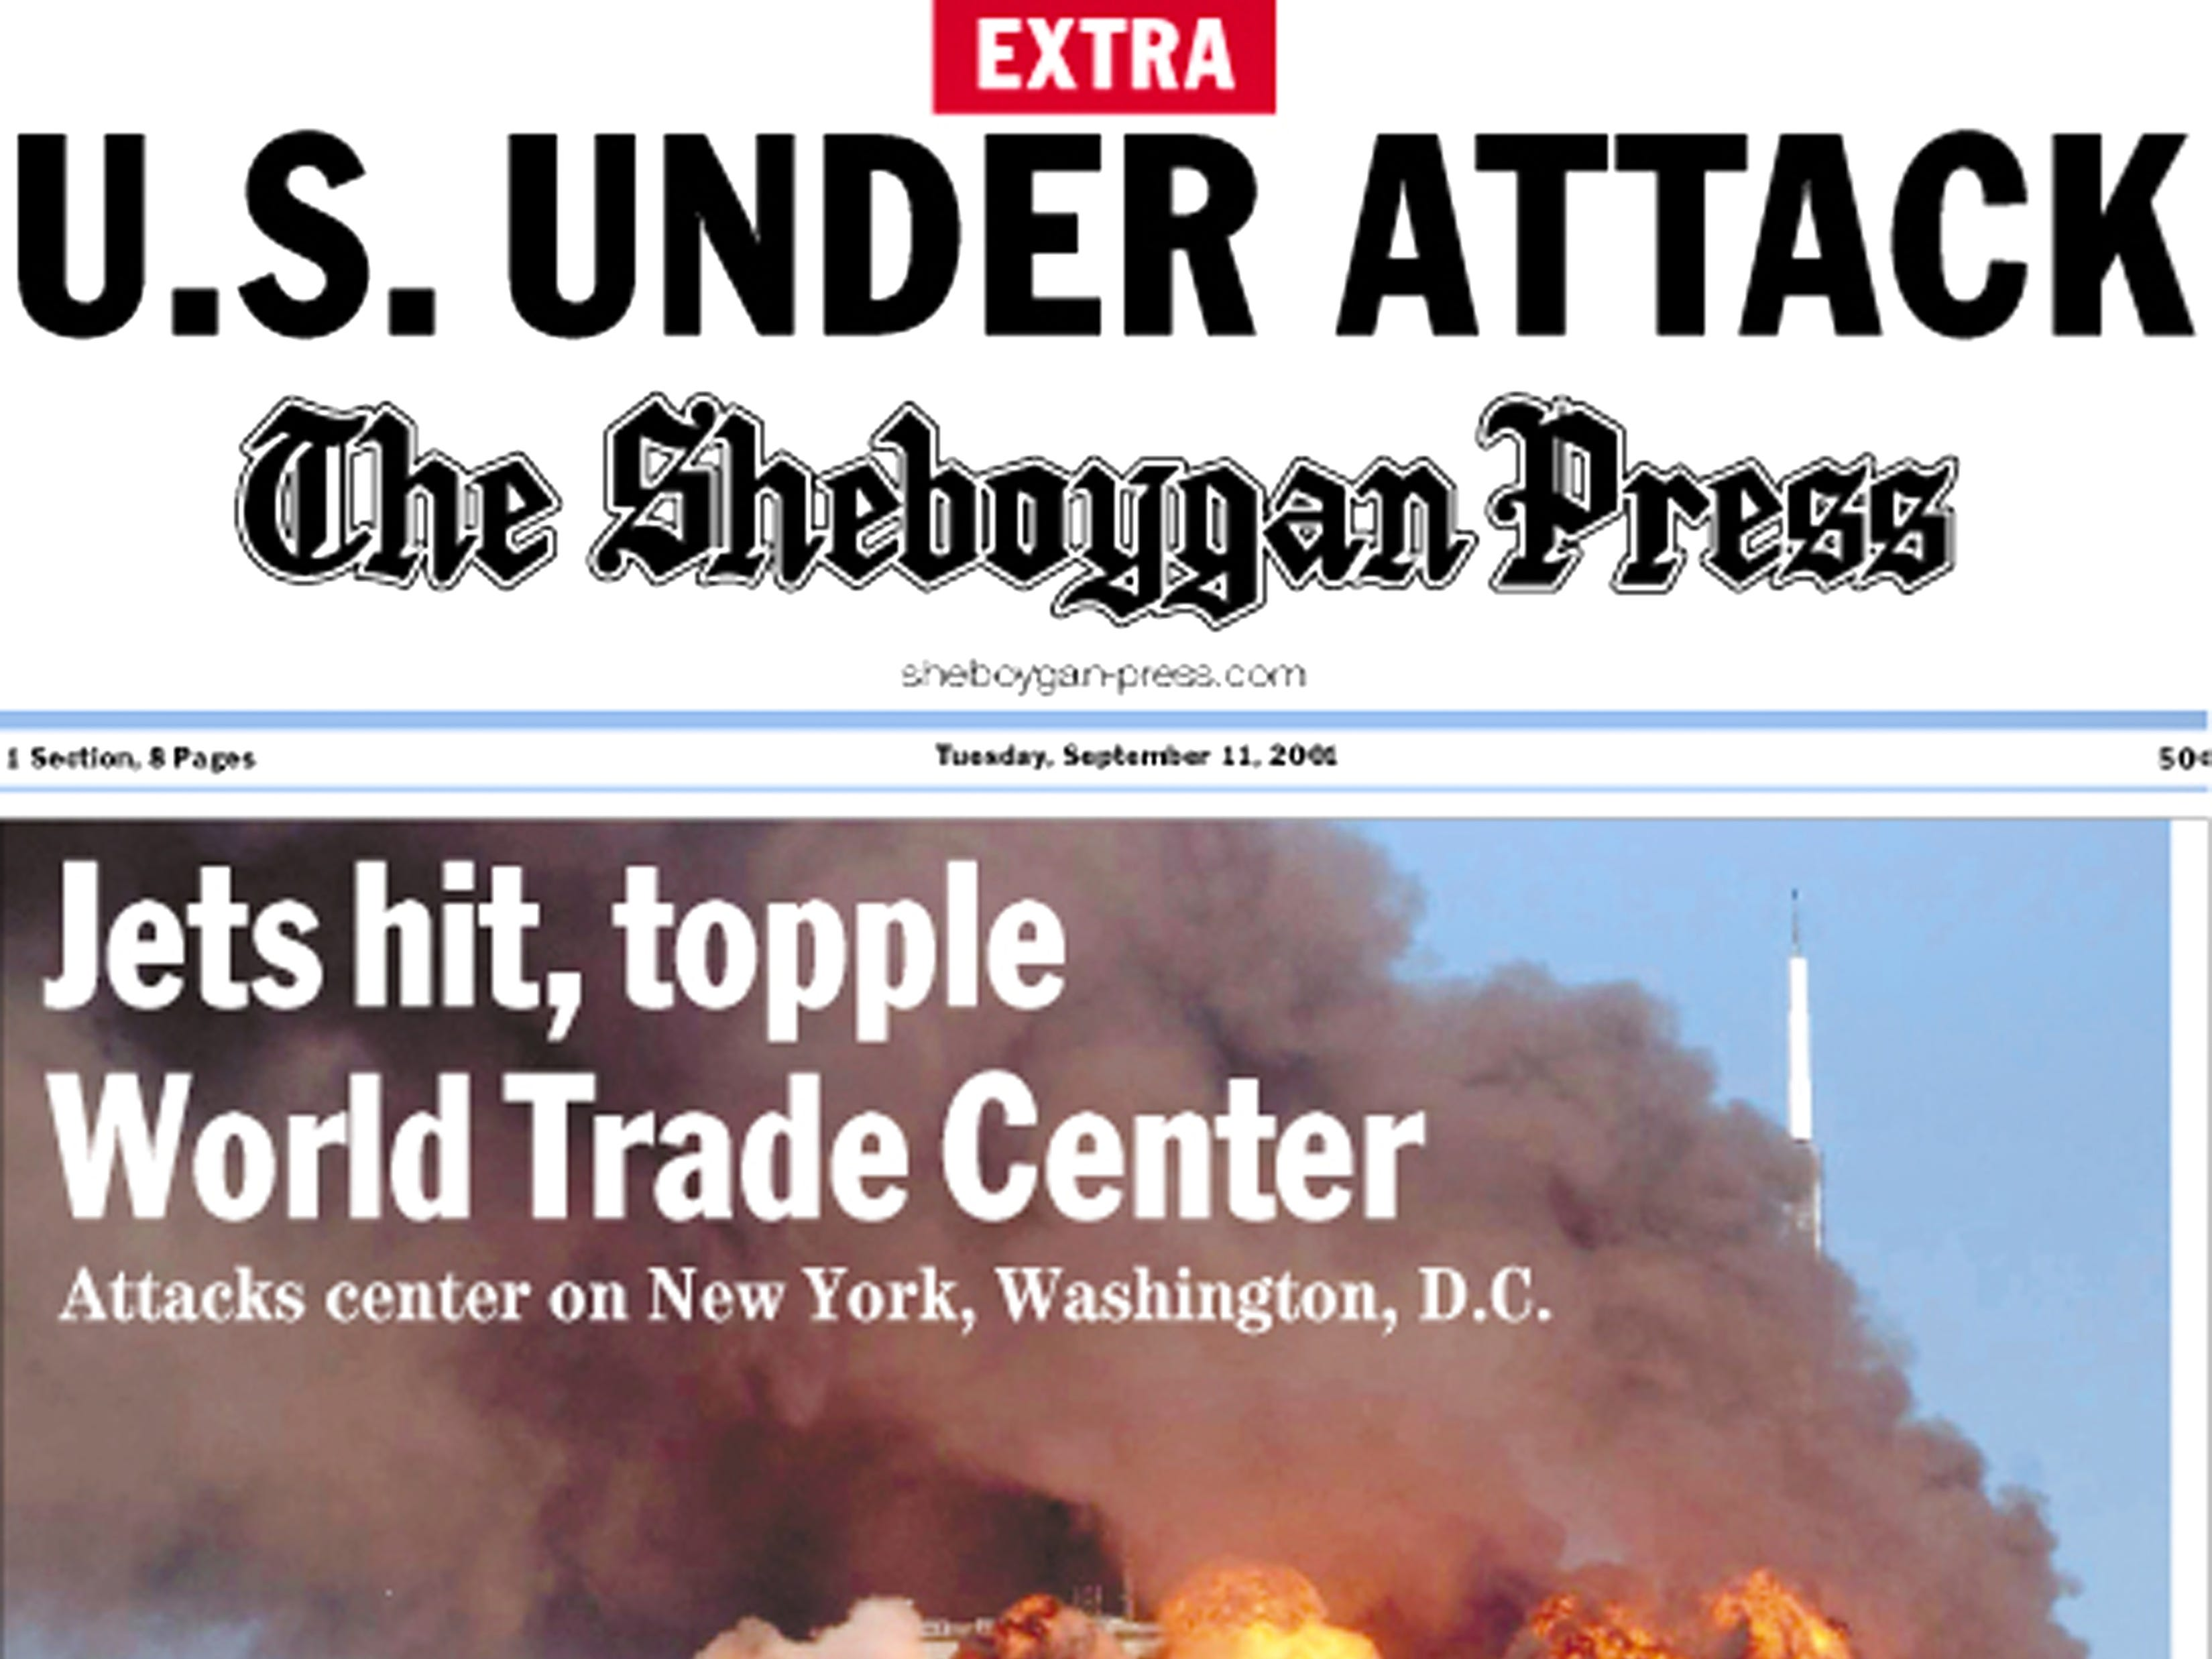 Front page of The Sheboygan Press on Sept. 12, 2001